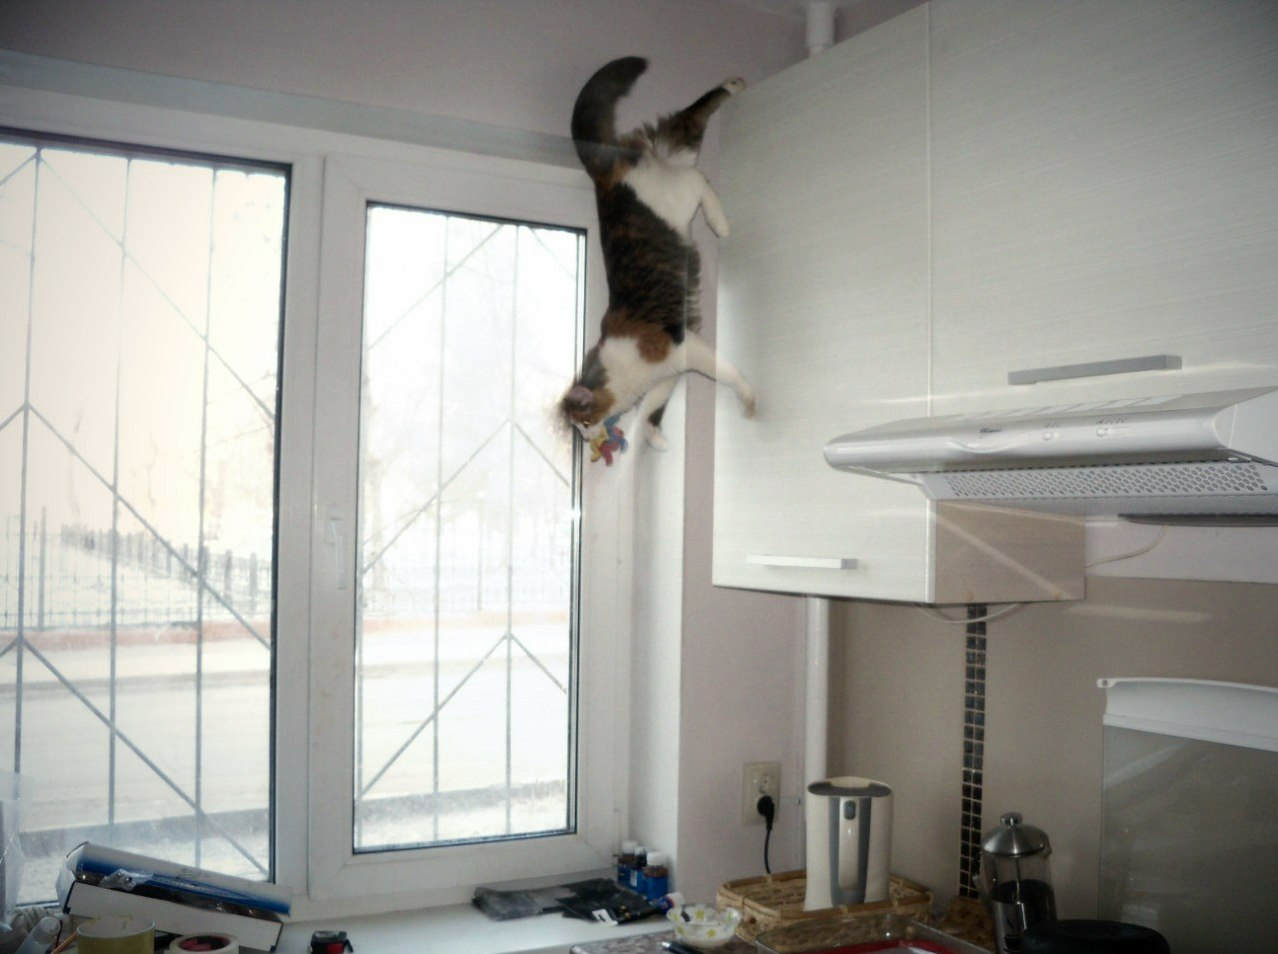 Sonya the gravity denying cat